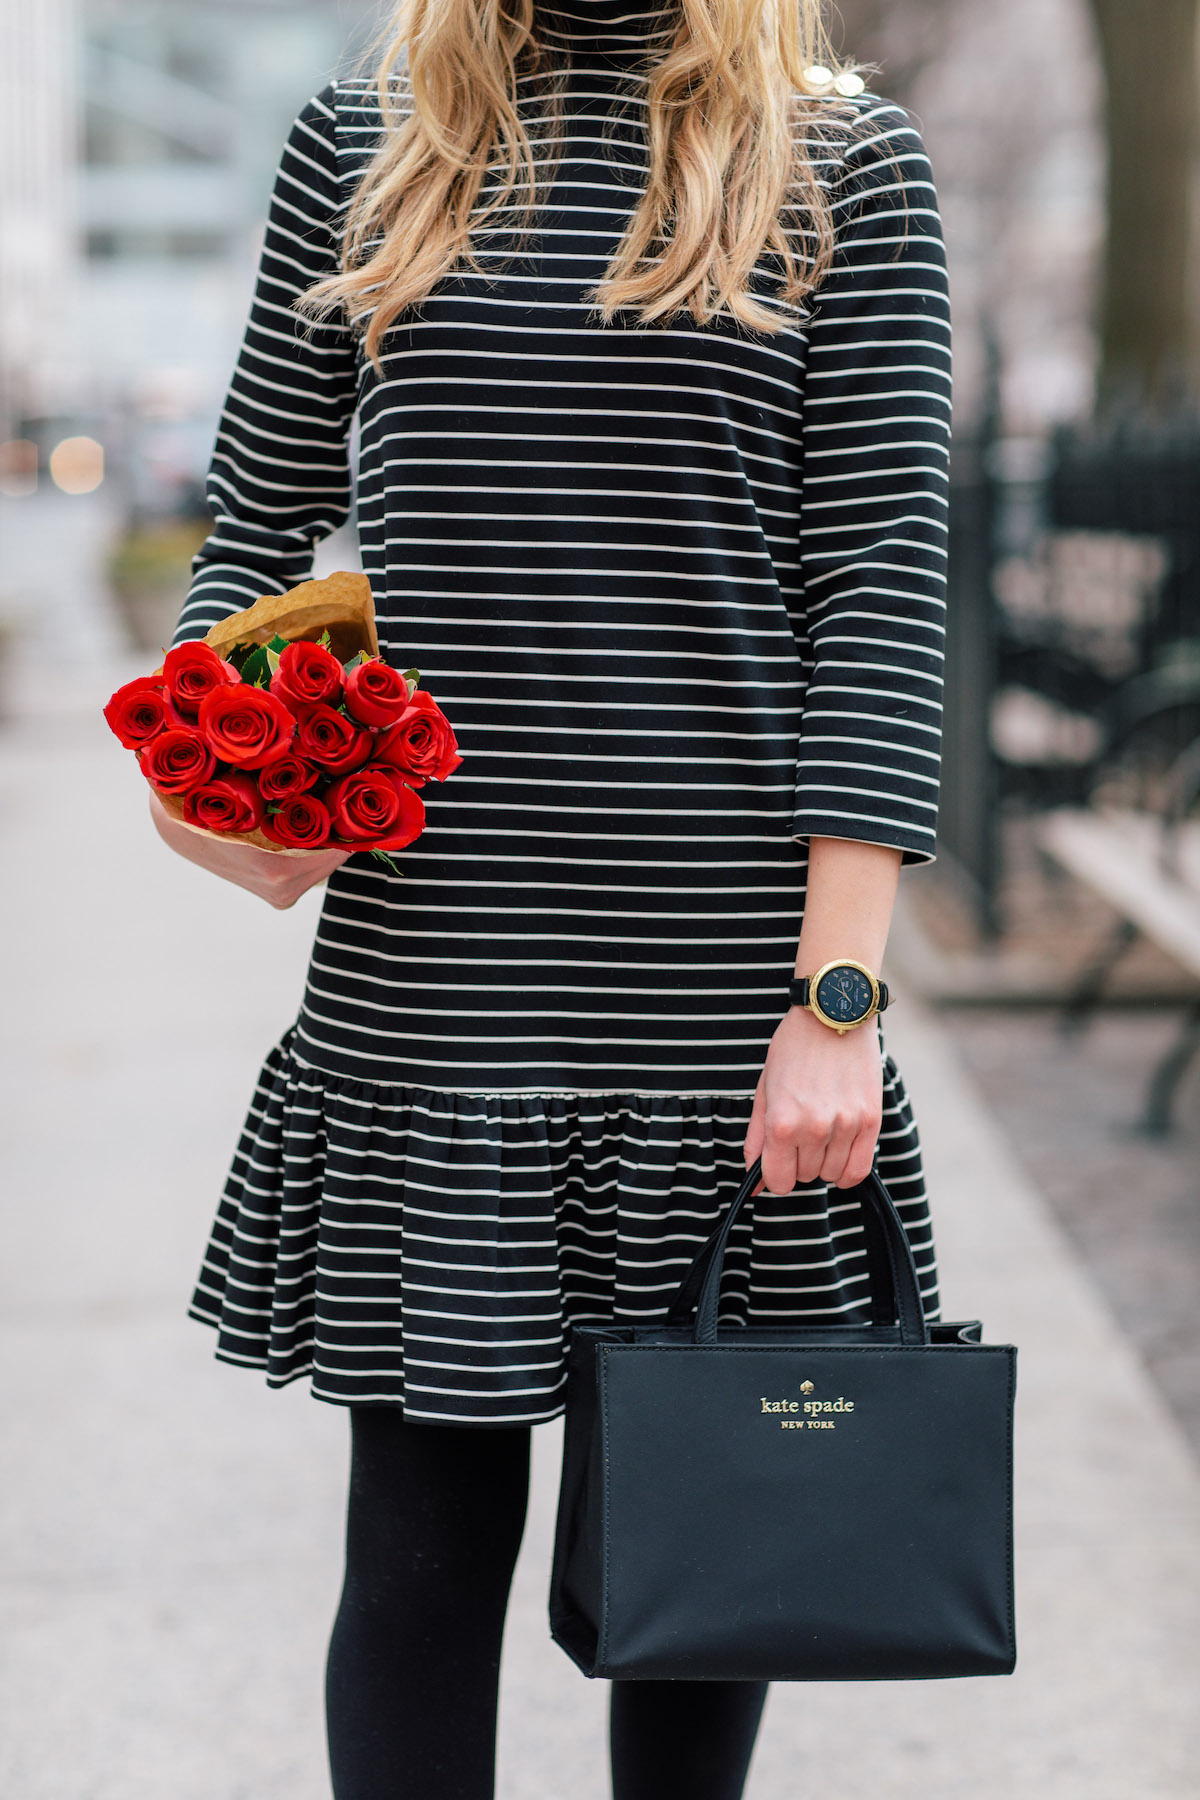 Cheap In China Limited Edition Kate Spade New York Striped Wool Dress With Credit Card Buy Best 4AOEXK